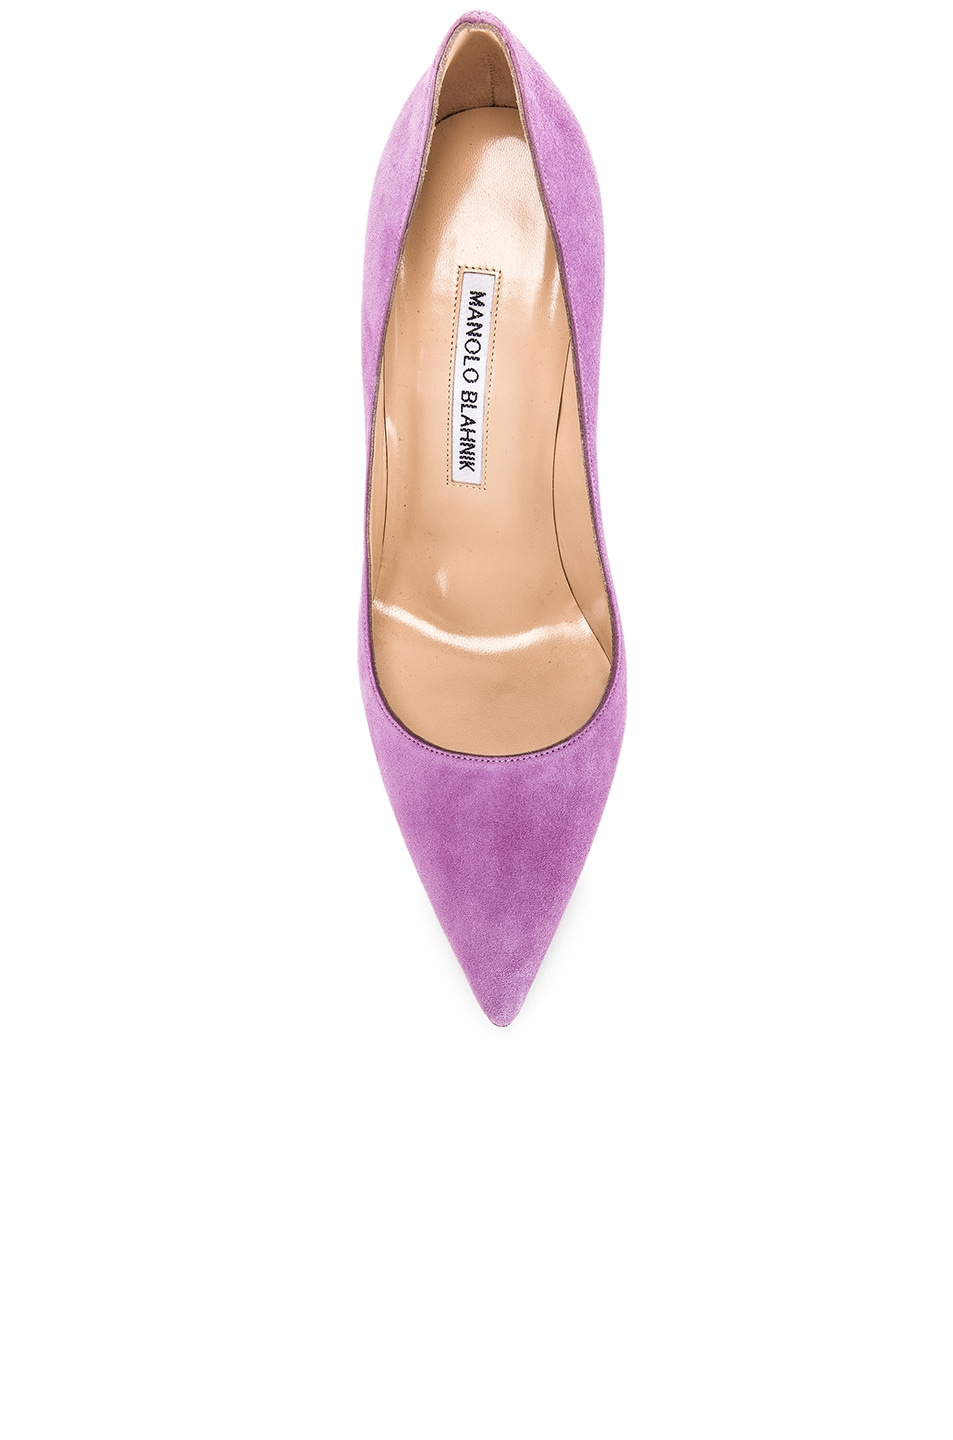 Image 4 of Manolo Blahnik BB 105 Pump in Lilac Purple Suede